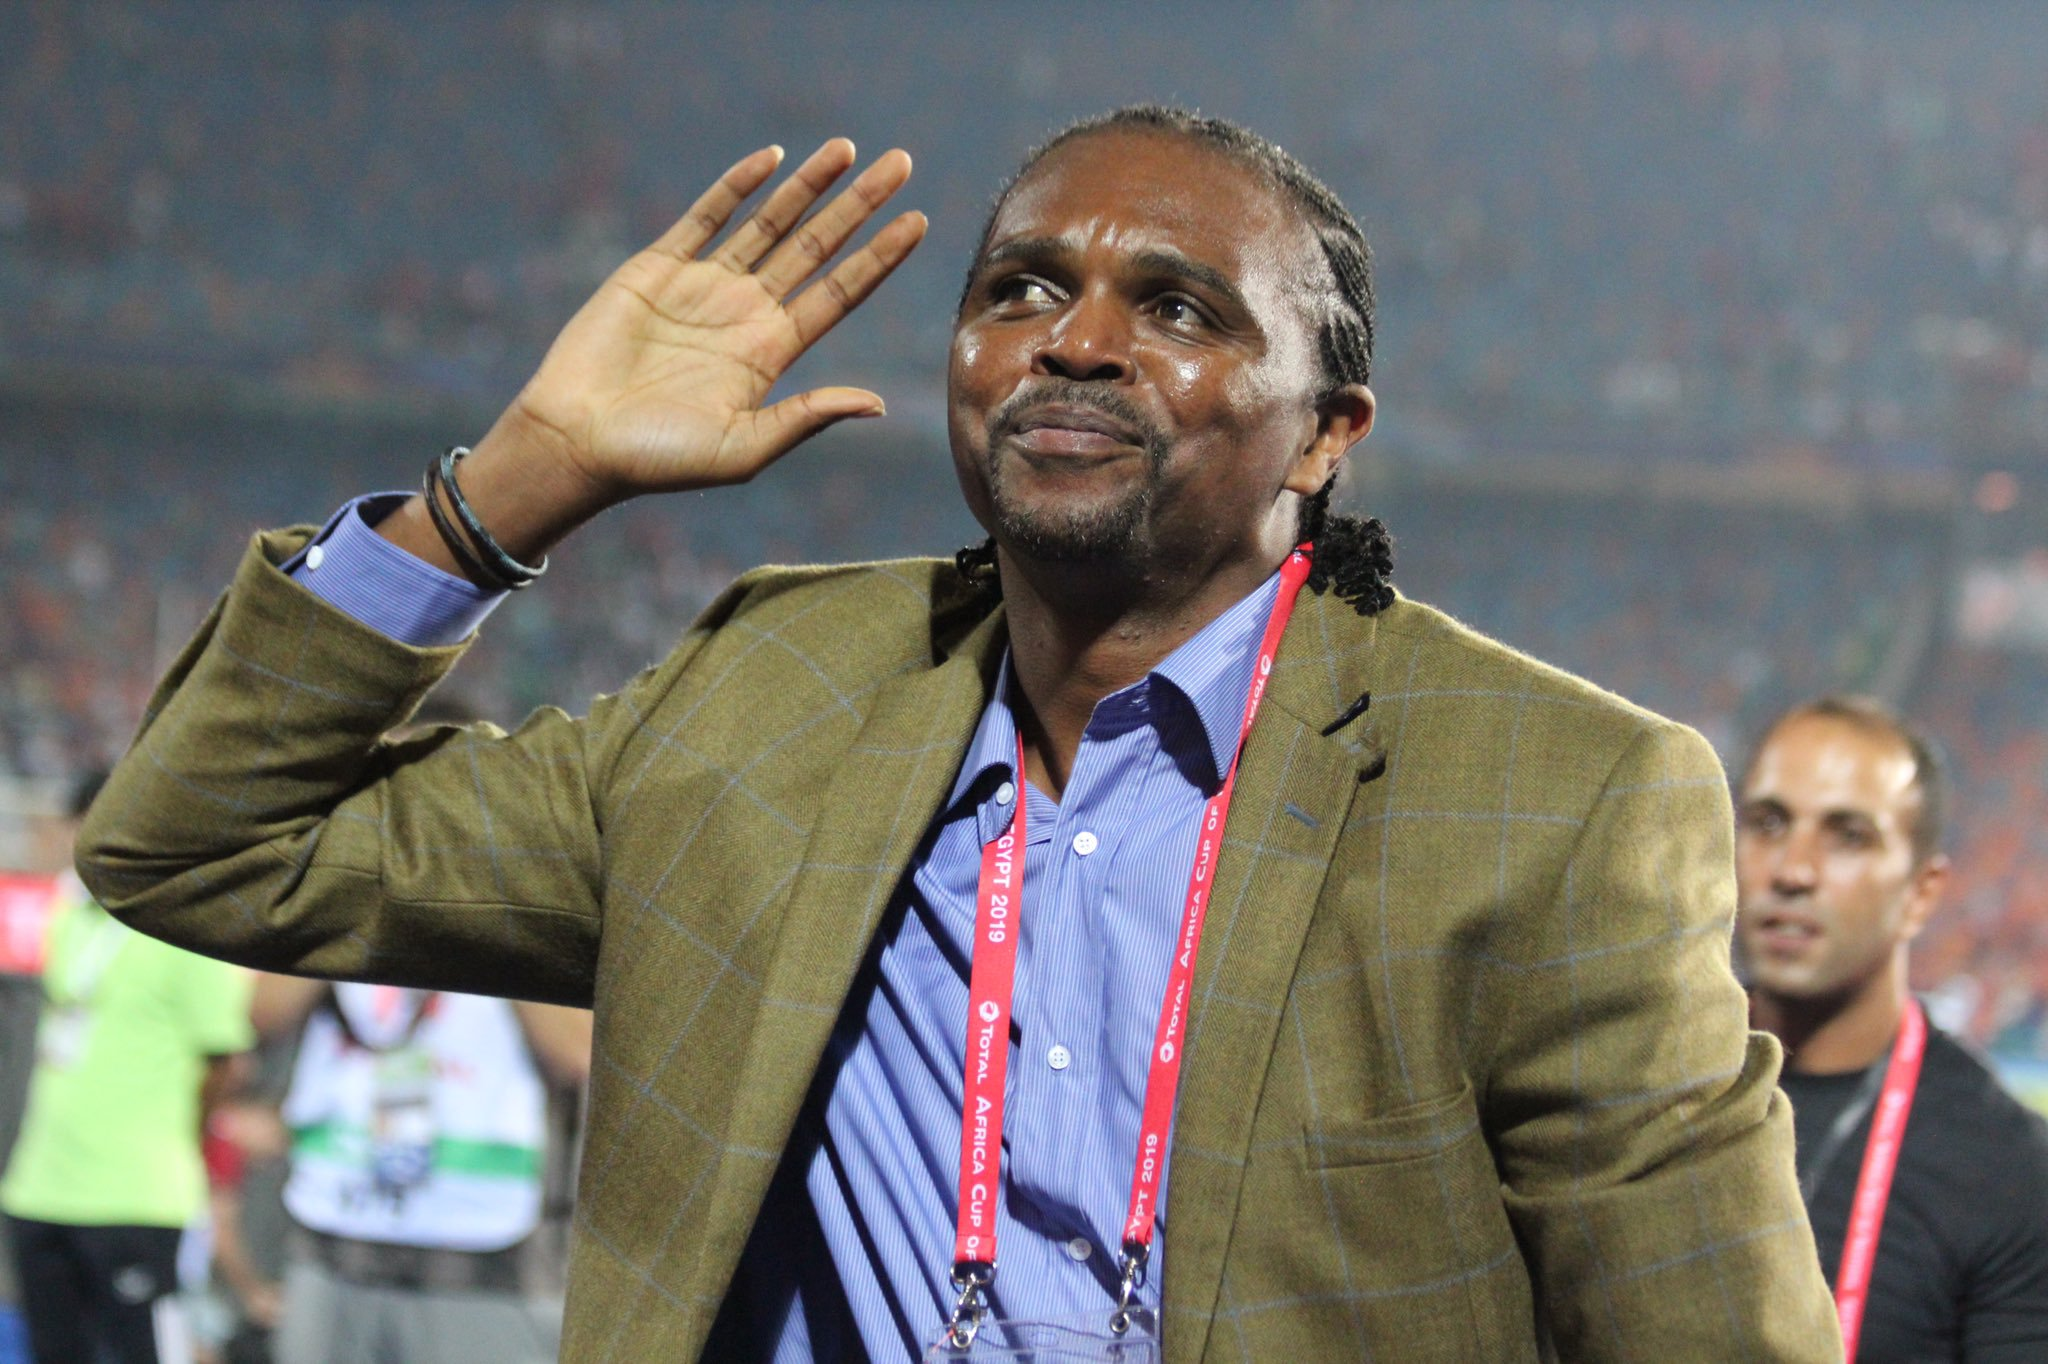 Saving lives and backing Eagles – Nwankwo Kanu is indeed an inspiration